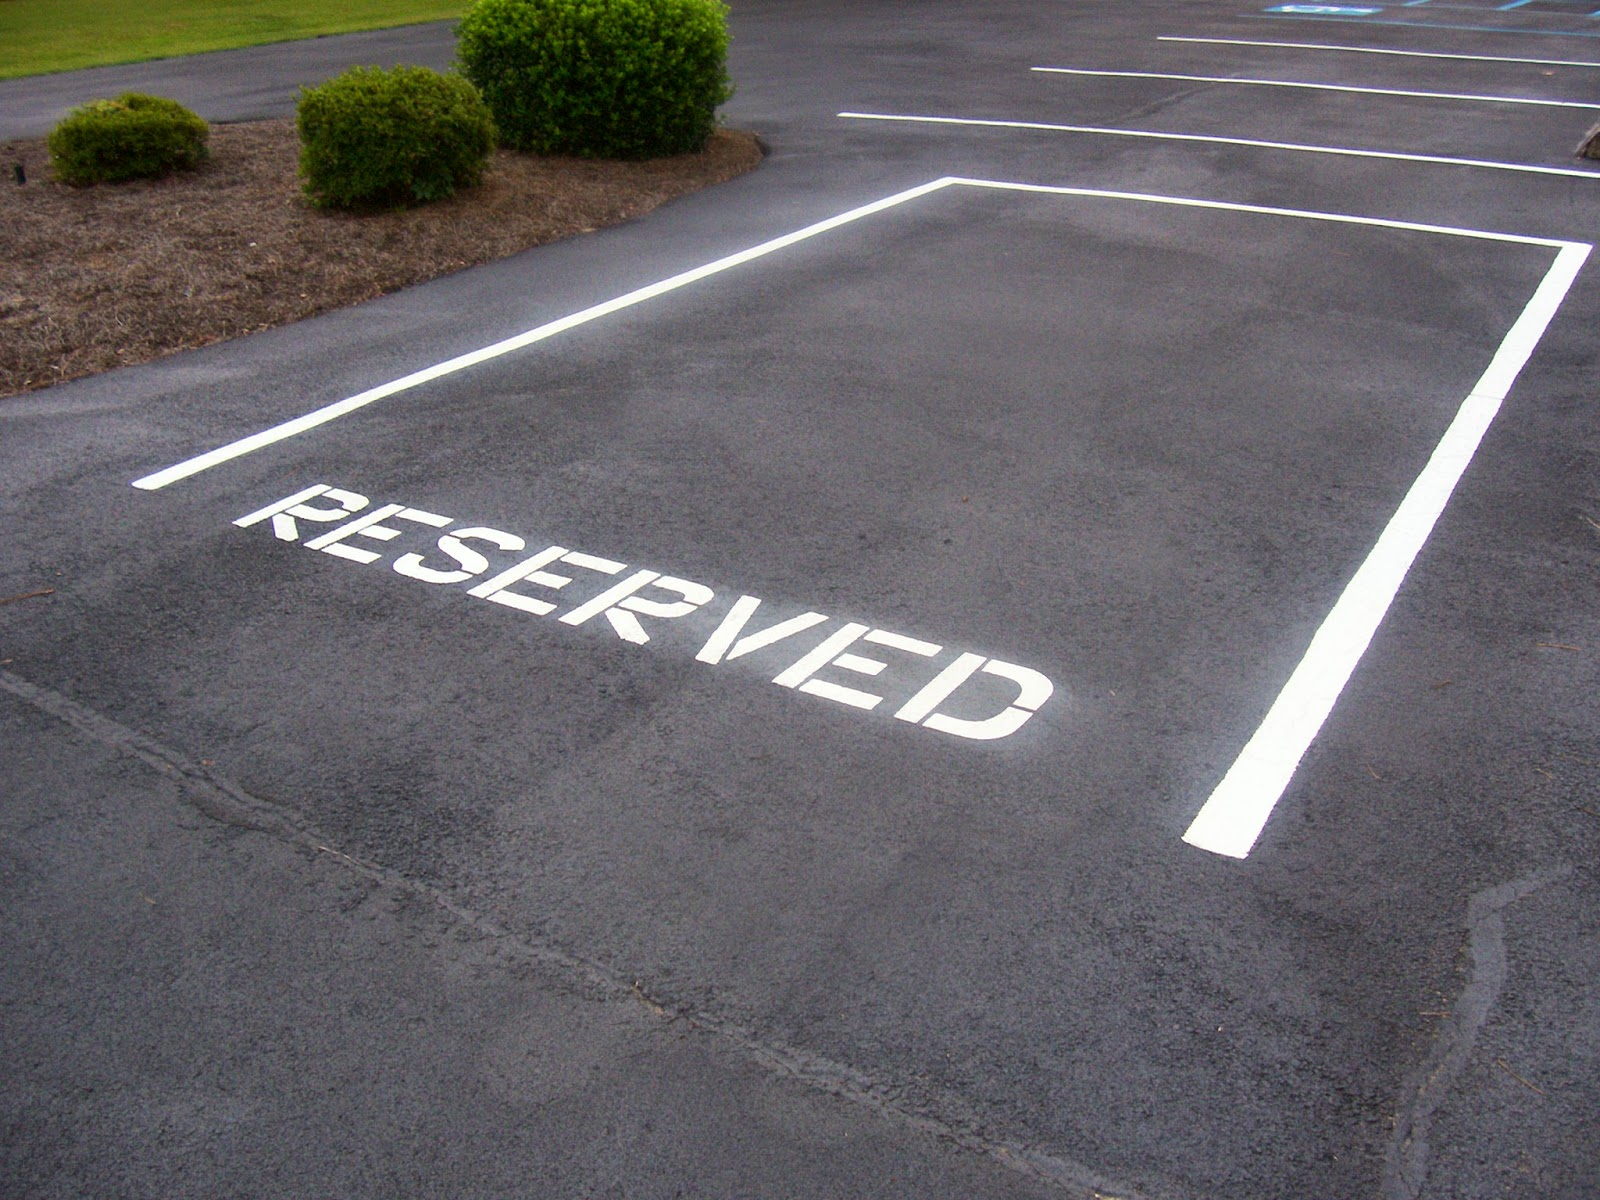 Reserved Parking Space Clipart wwwimgkidcom